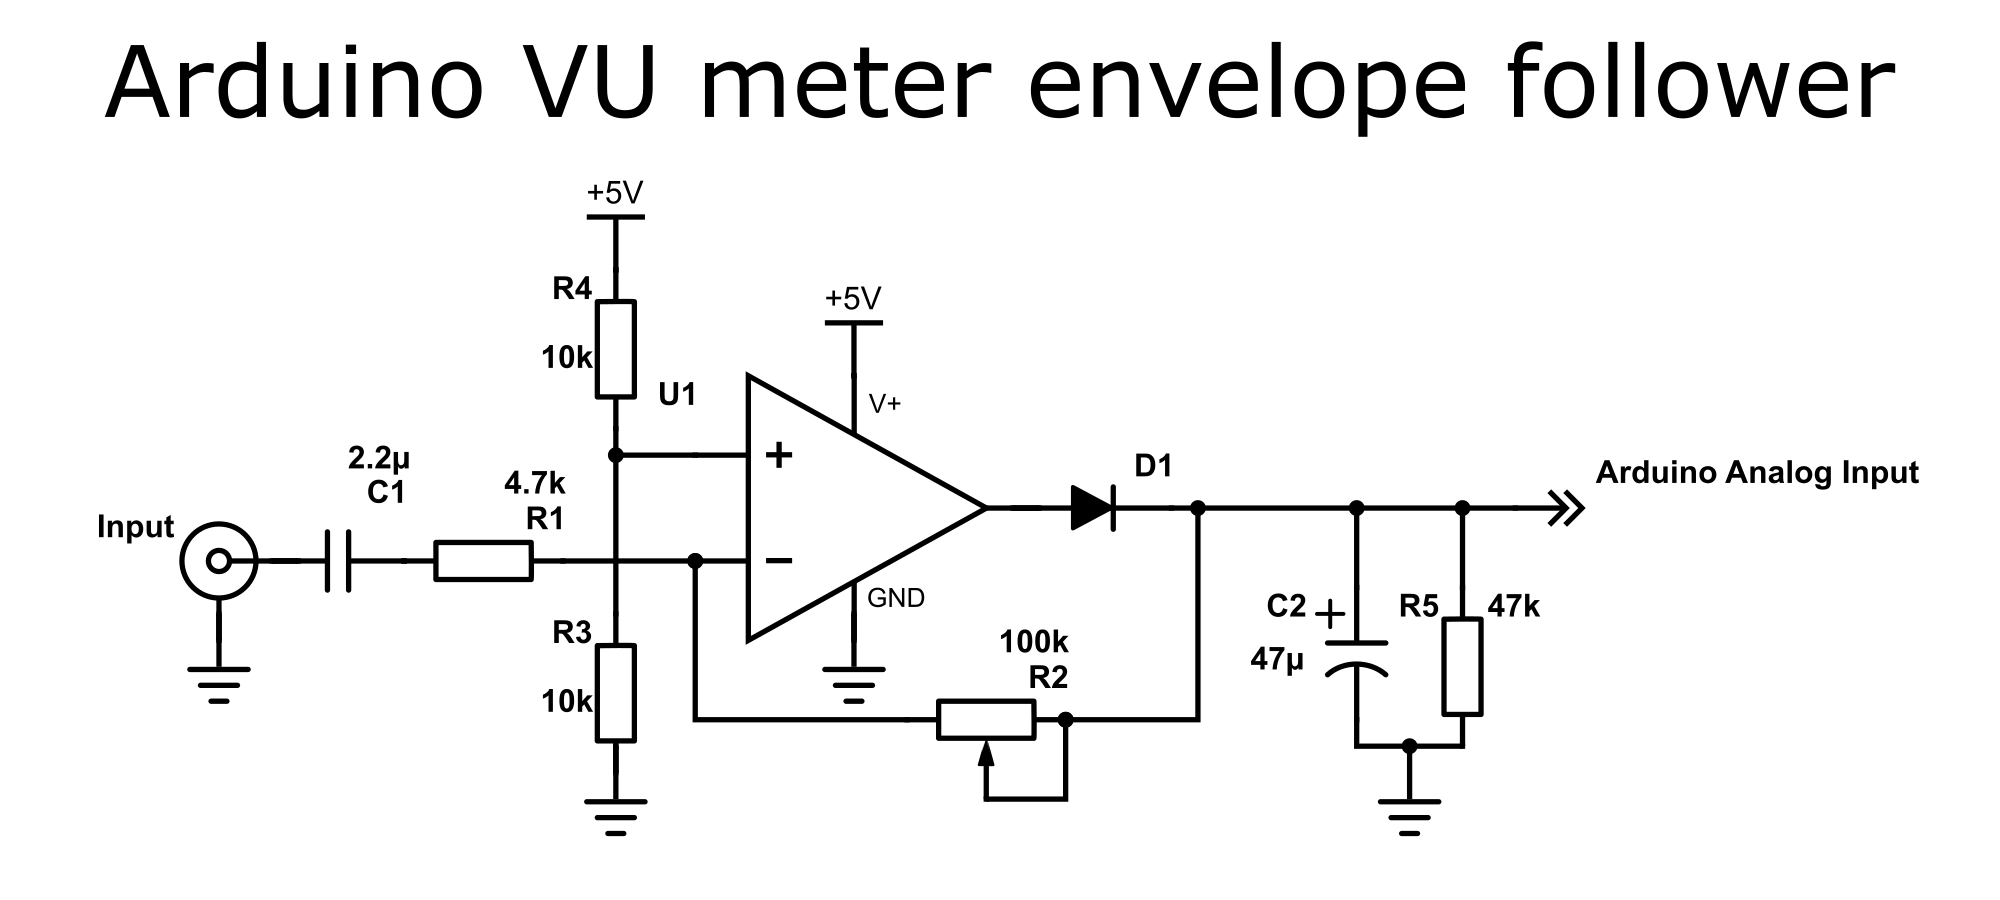 Xlr Microphone Vu Meter Circuit Diagram Op Amp Peak Detector Pictures Its Very Similar To A Normal Inverting Amplifier But The Diode At Output Prevents Current Flowing Into When Of Is